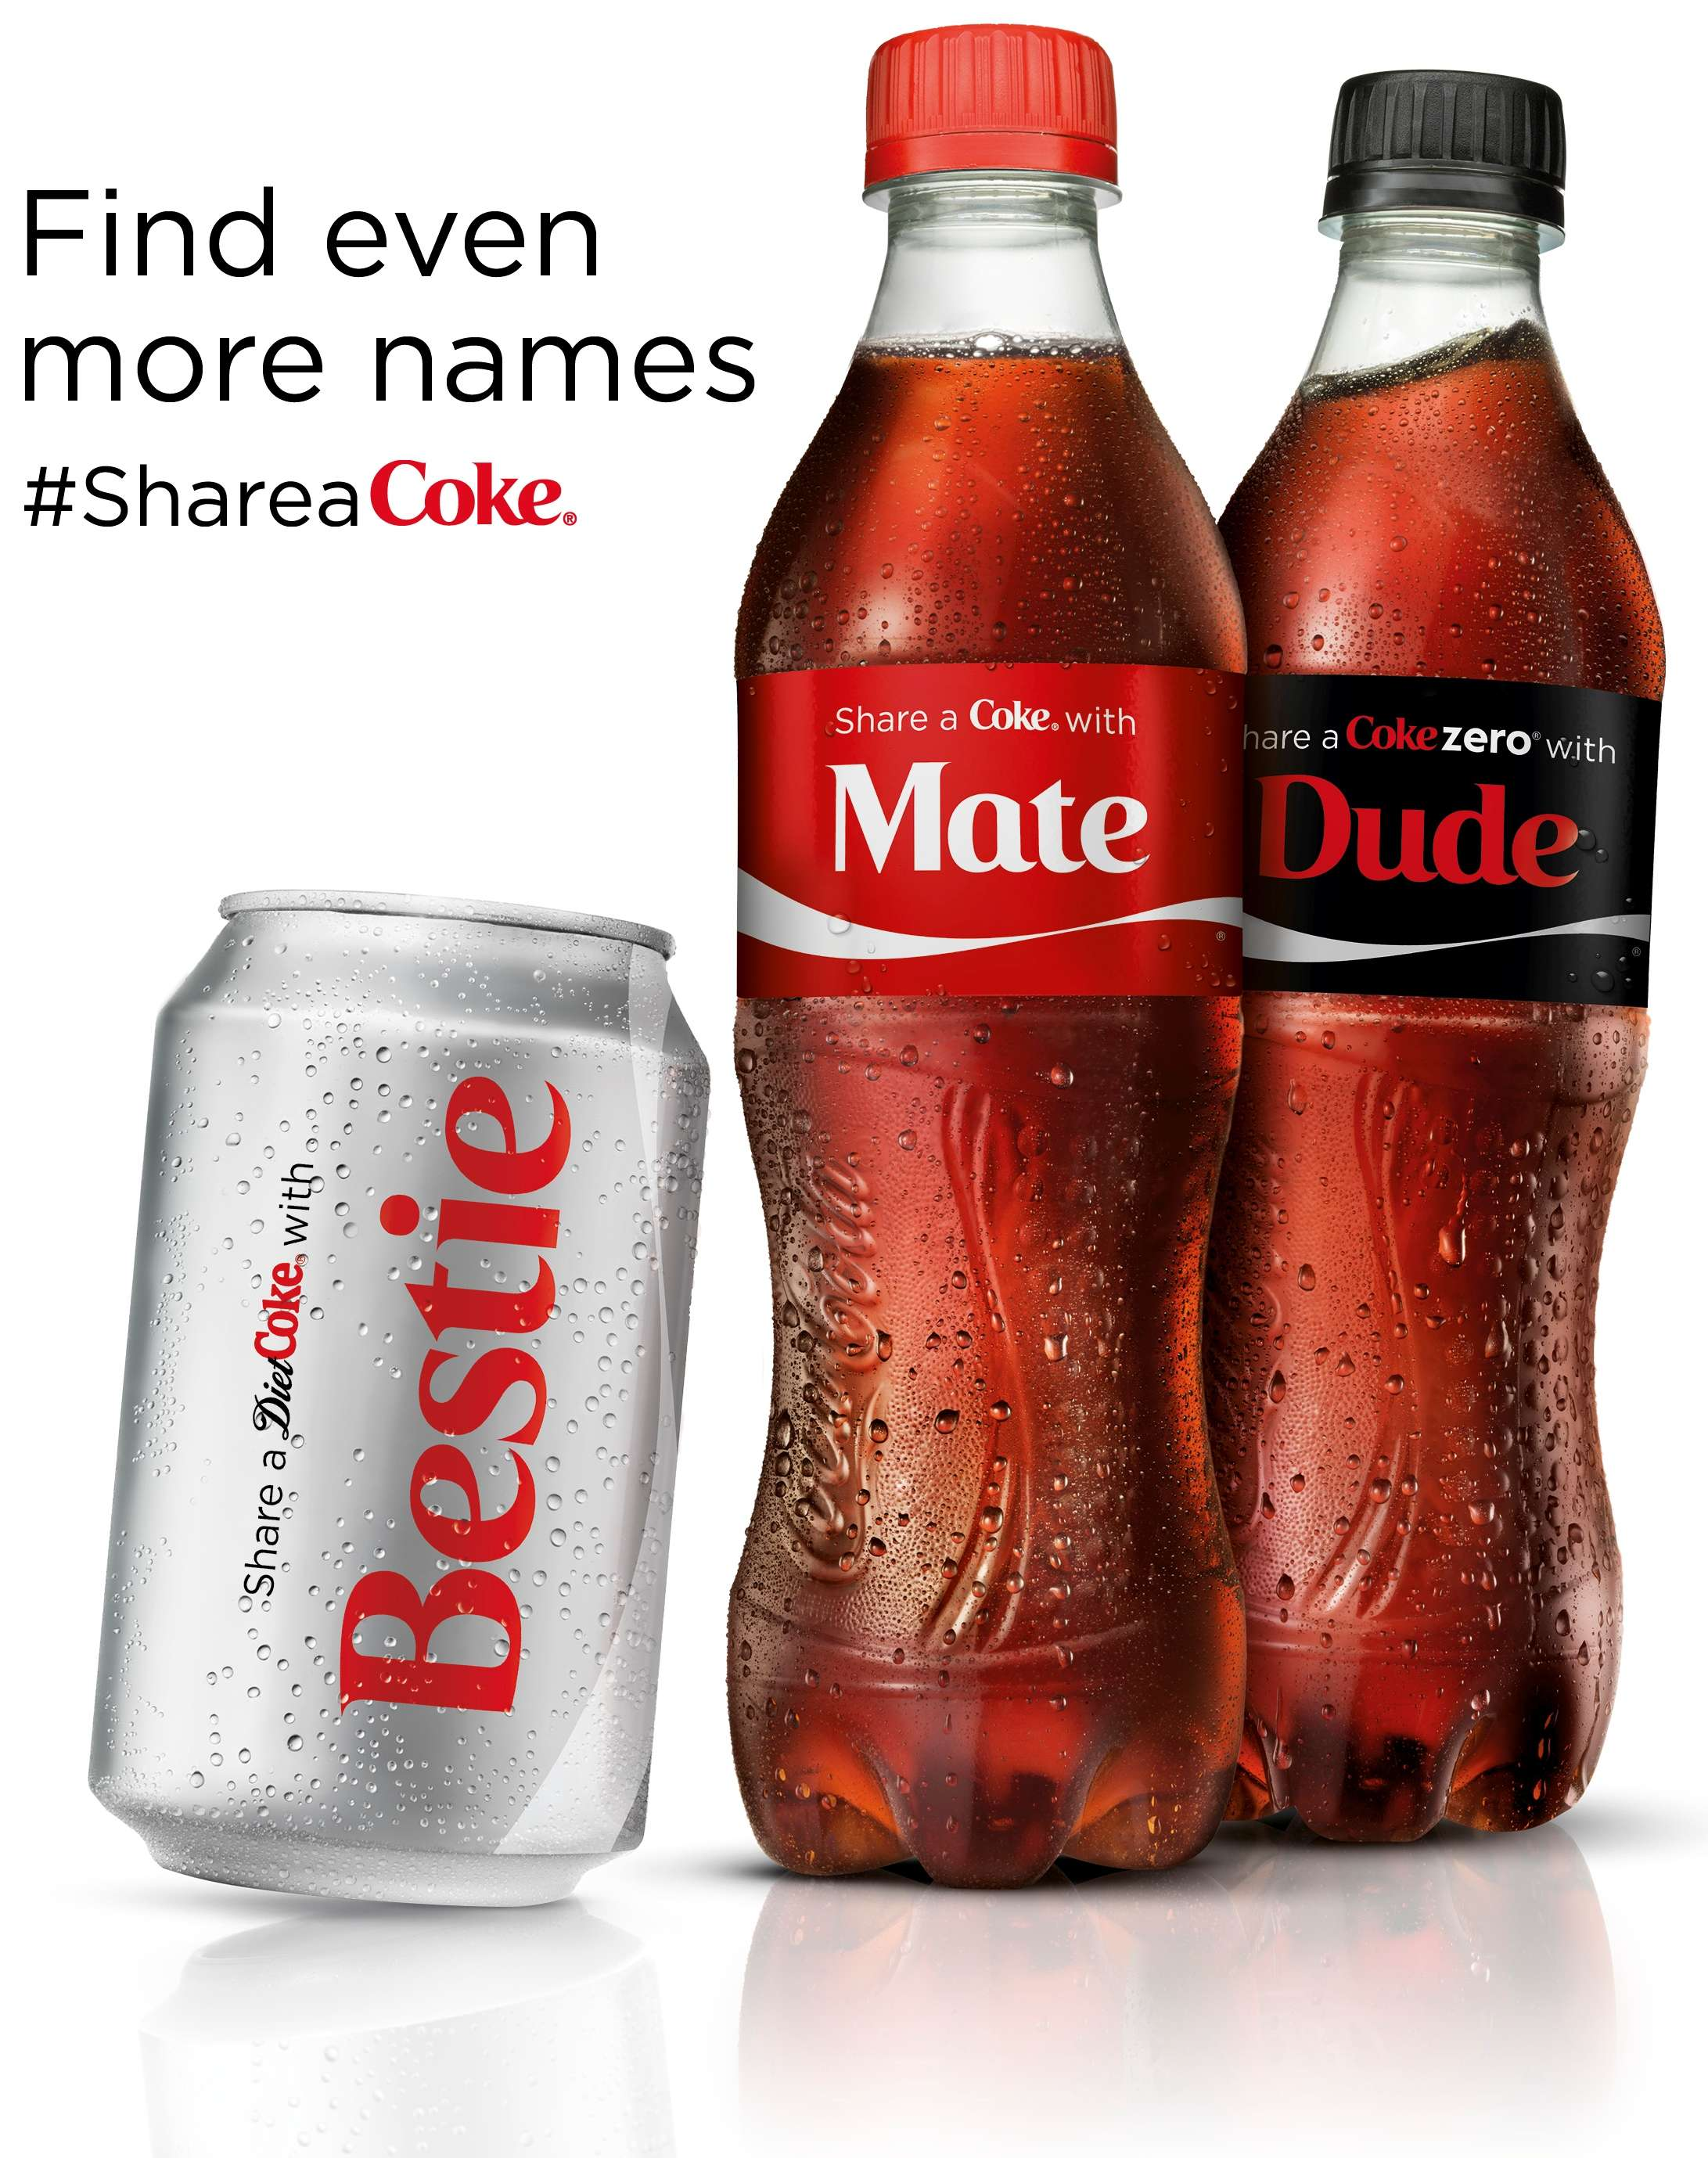 share a coke expands